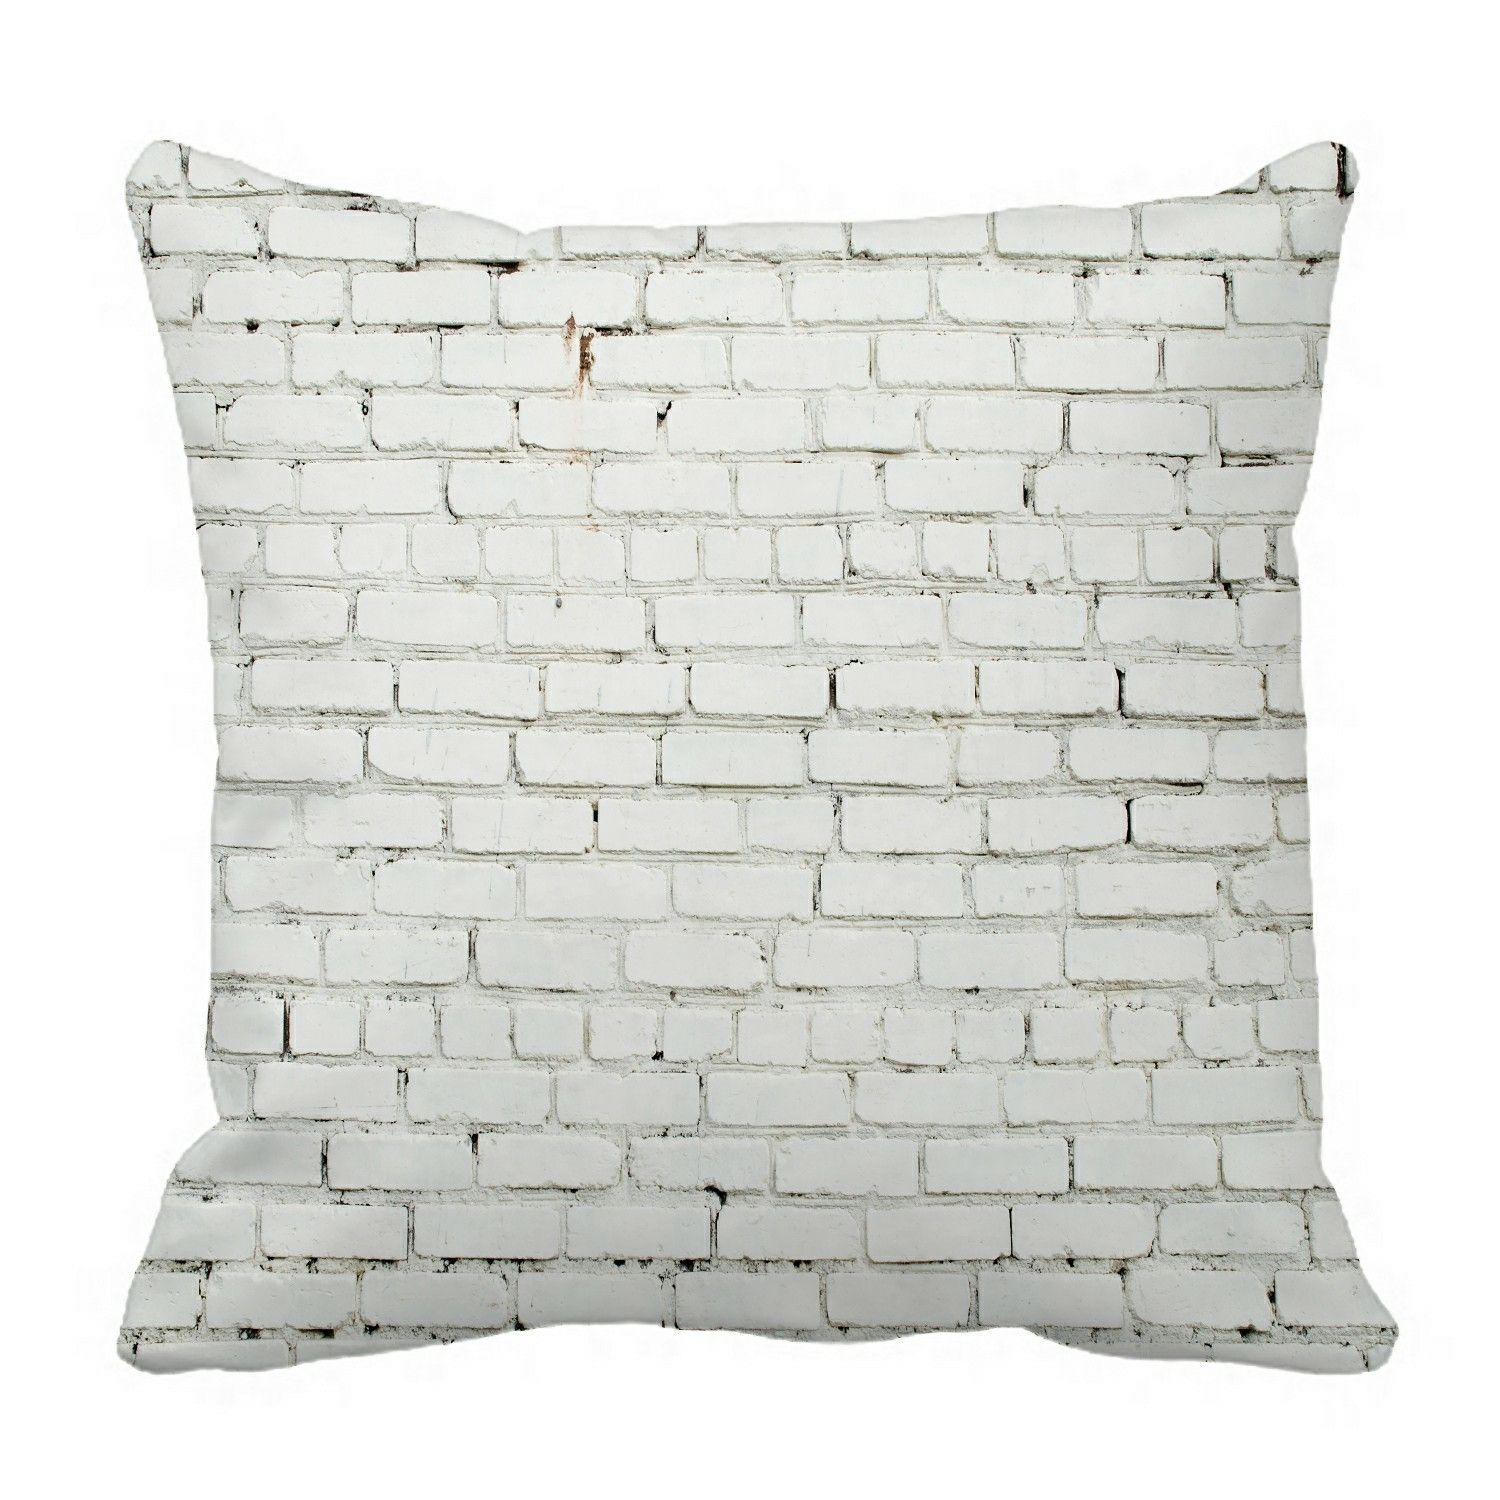 Grunge Pillow?Case?Pillow?Cover?Cushion?Cover